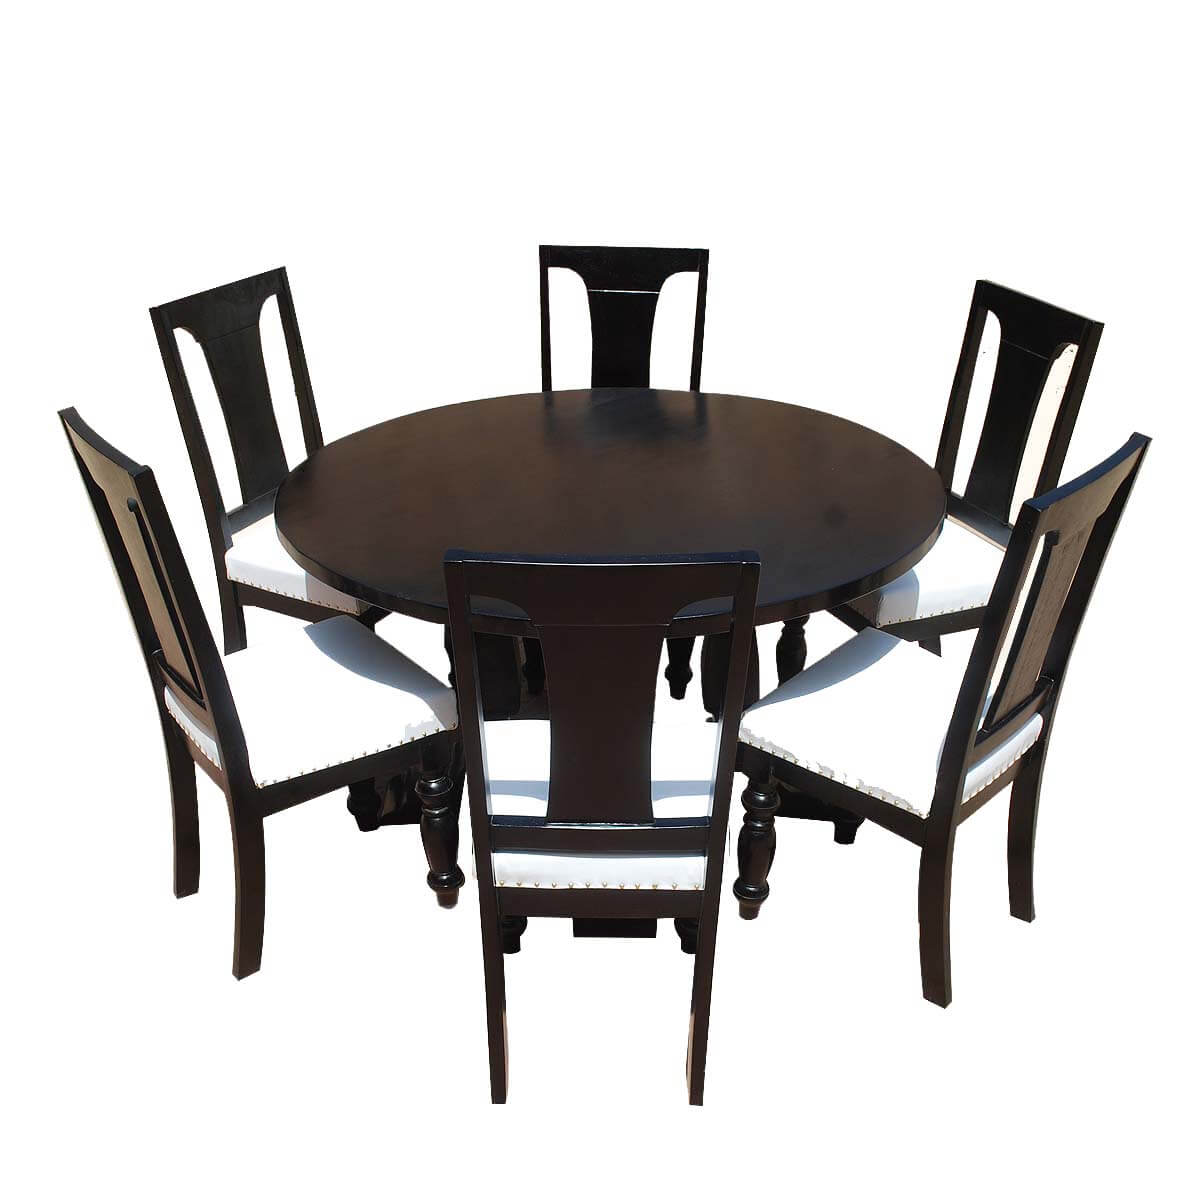 Leather Dining Set: California Solid Wood & Leather 7p Round Dining Room Set